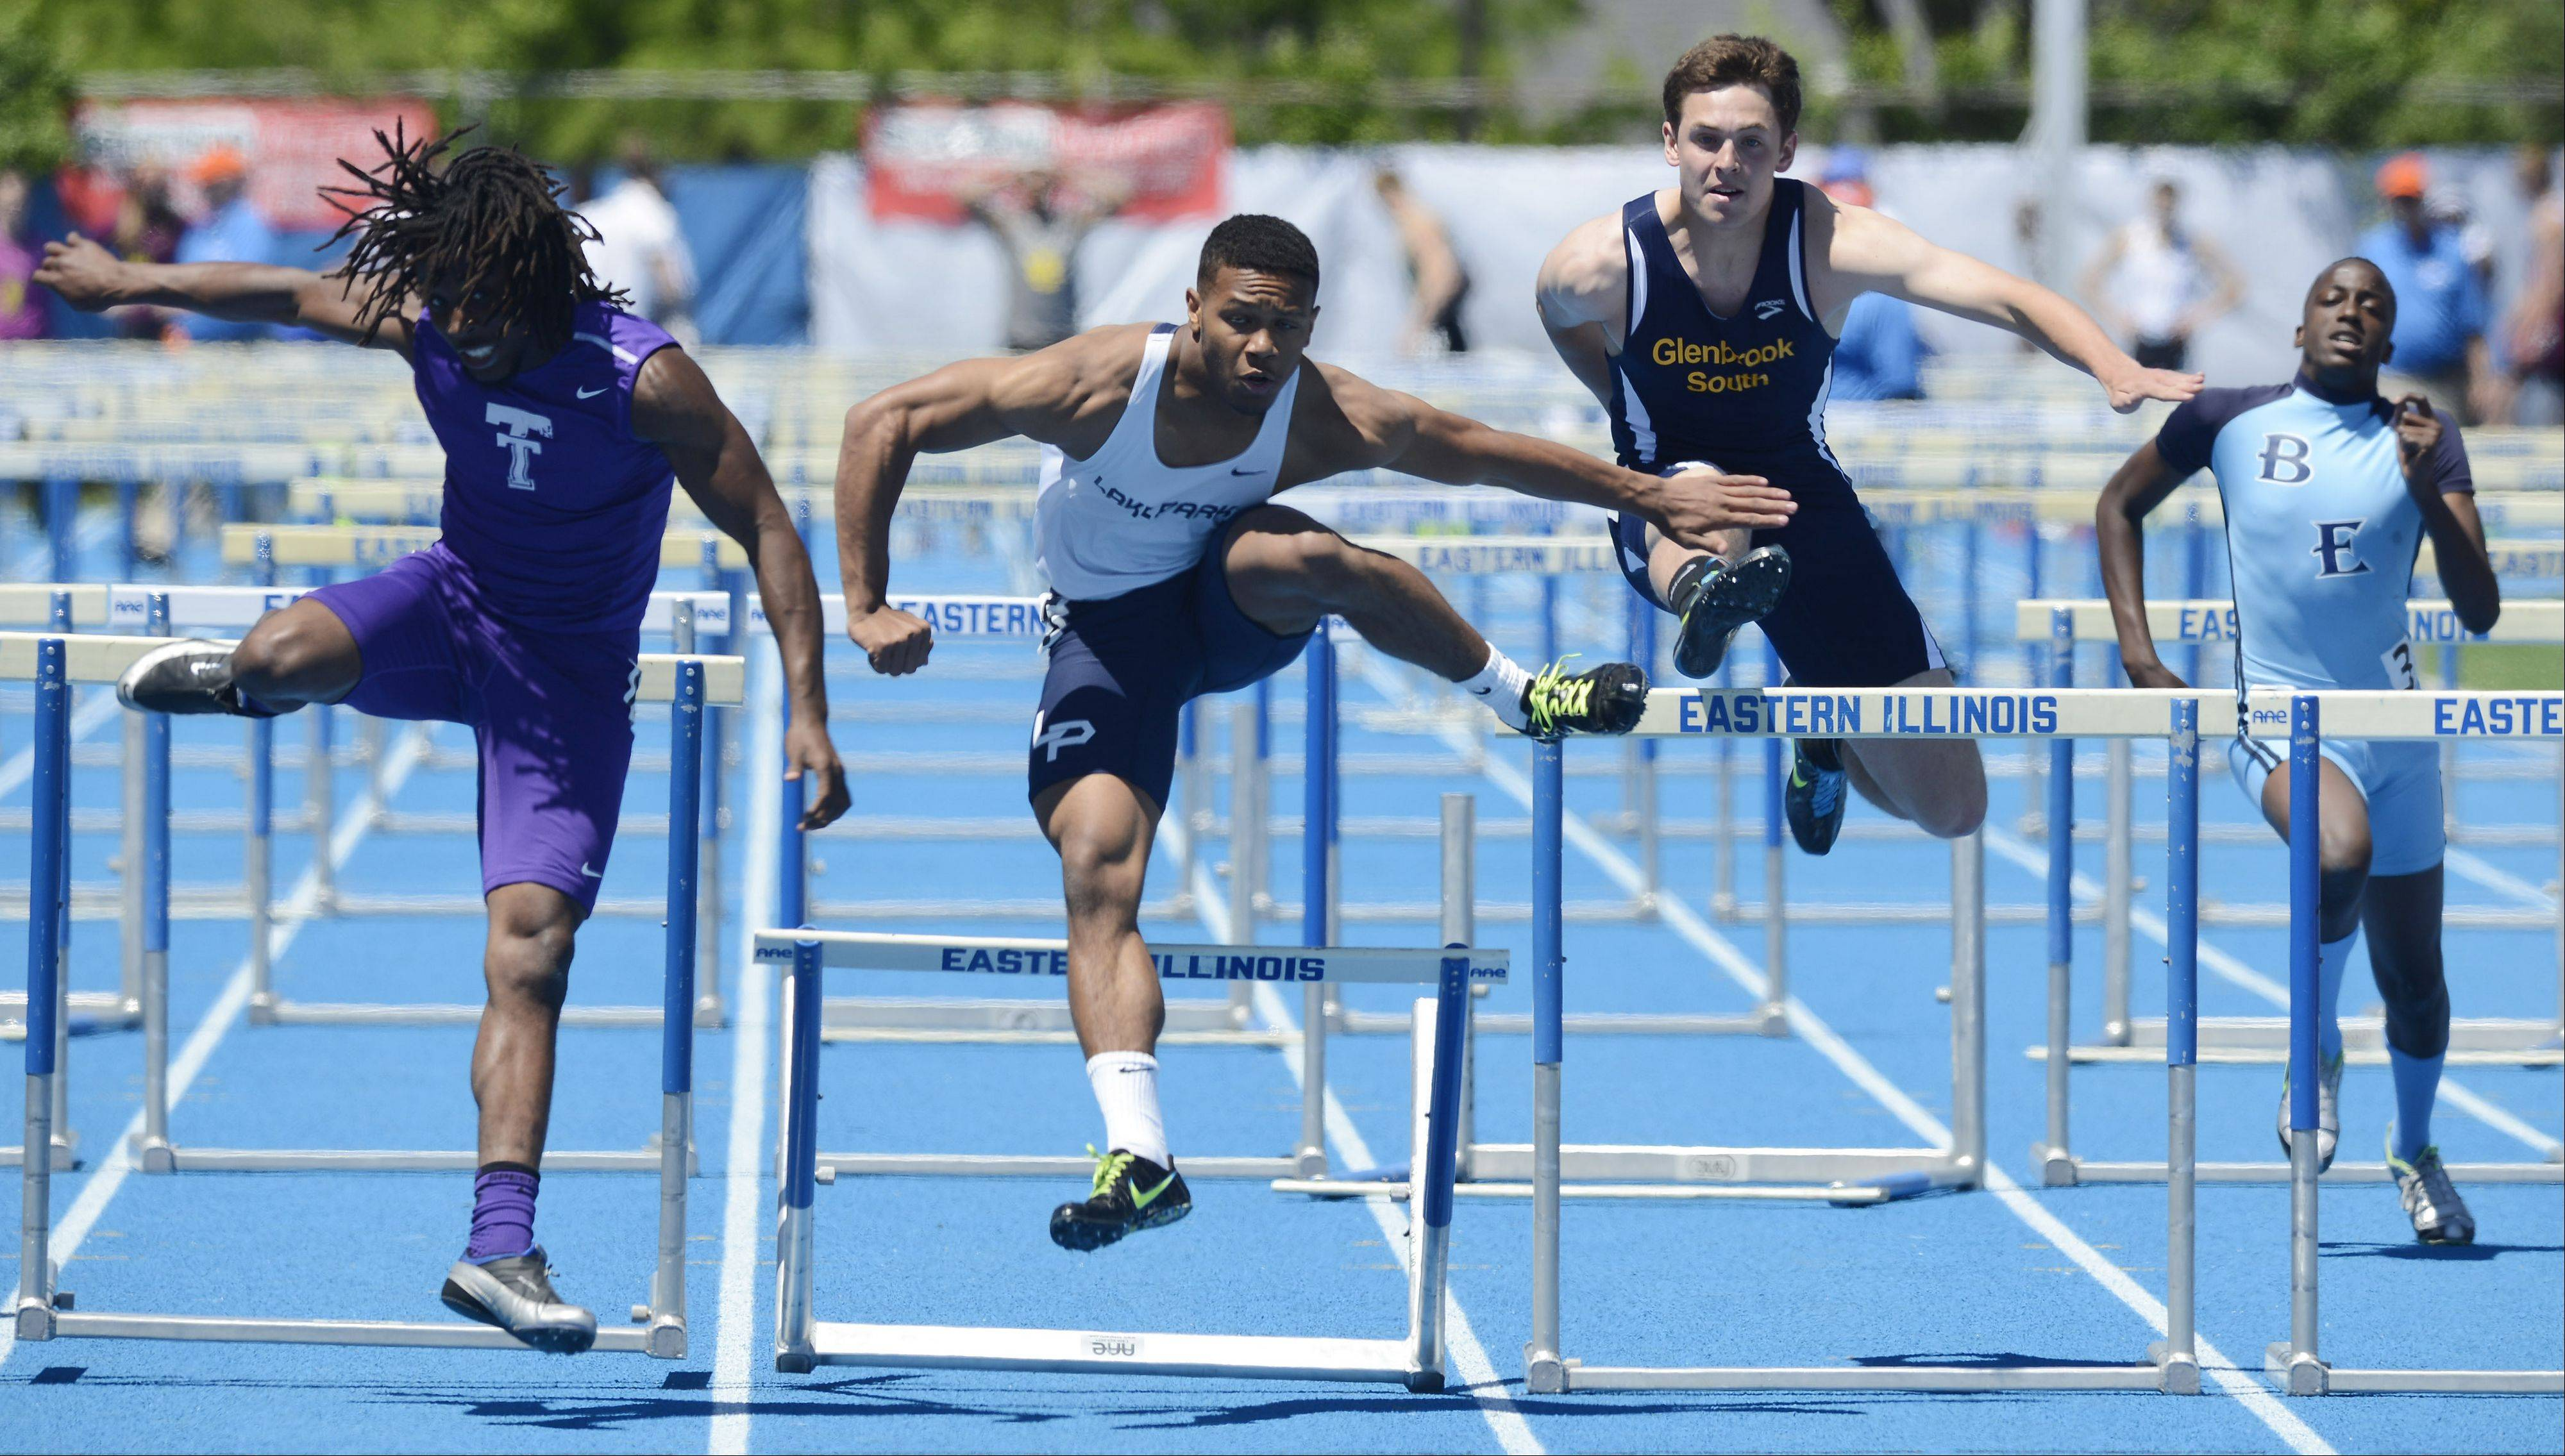 Antonio Shenault of Lake Park, second from left, clears the final hurdle in the Class 3A 110-meter high hurdles during the boys state track preliminaries in Charleston Friday.